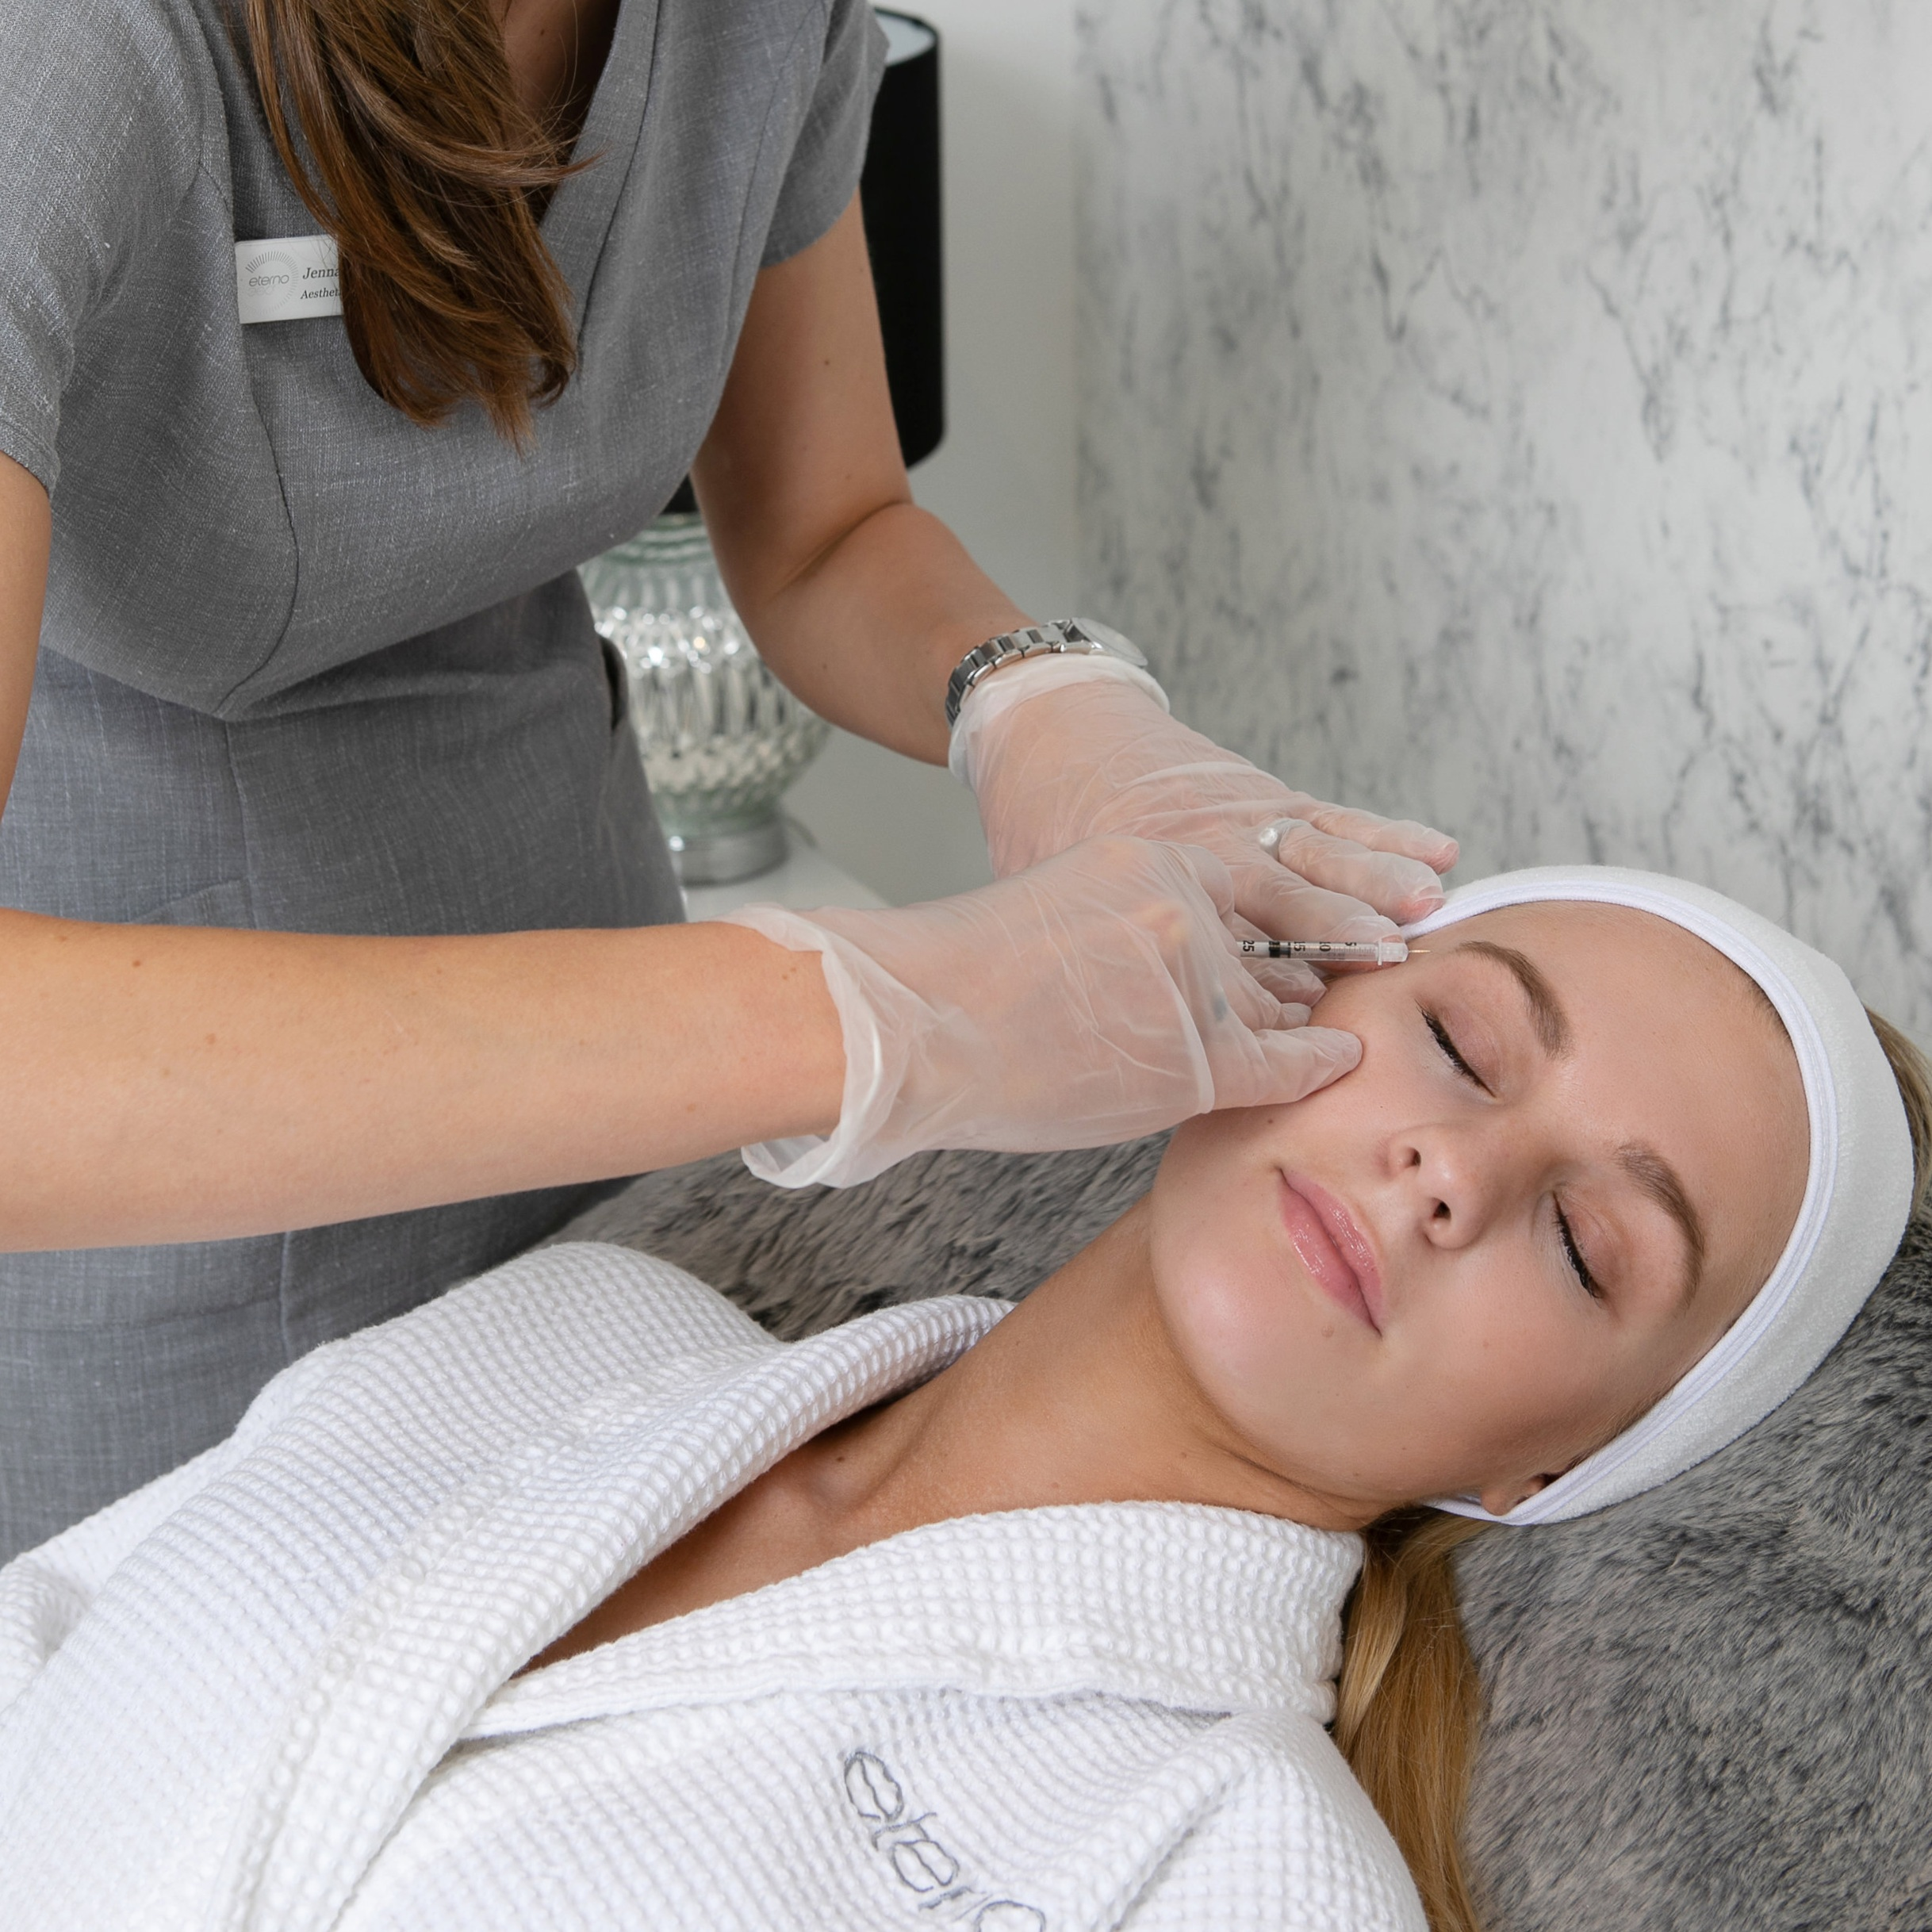 PRP Therapy - Platelet Rich Plasma Therapy utilises your body's own ability to regenerate to revitalise skin & hair.